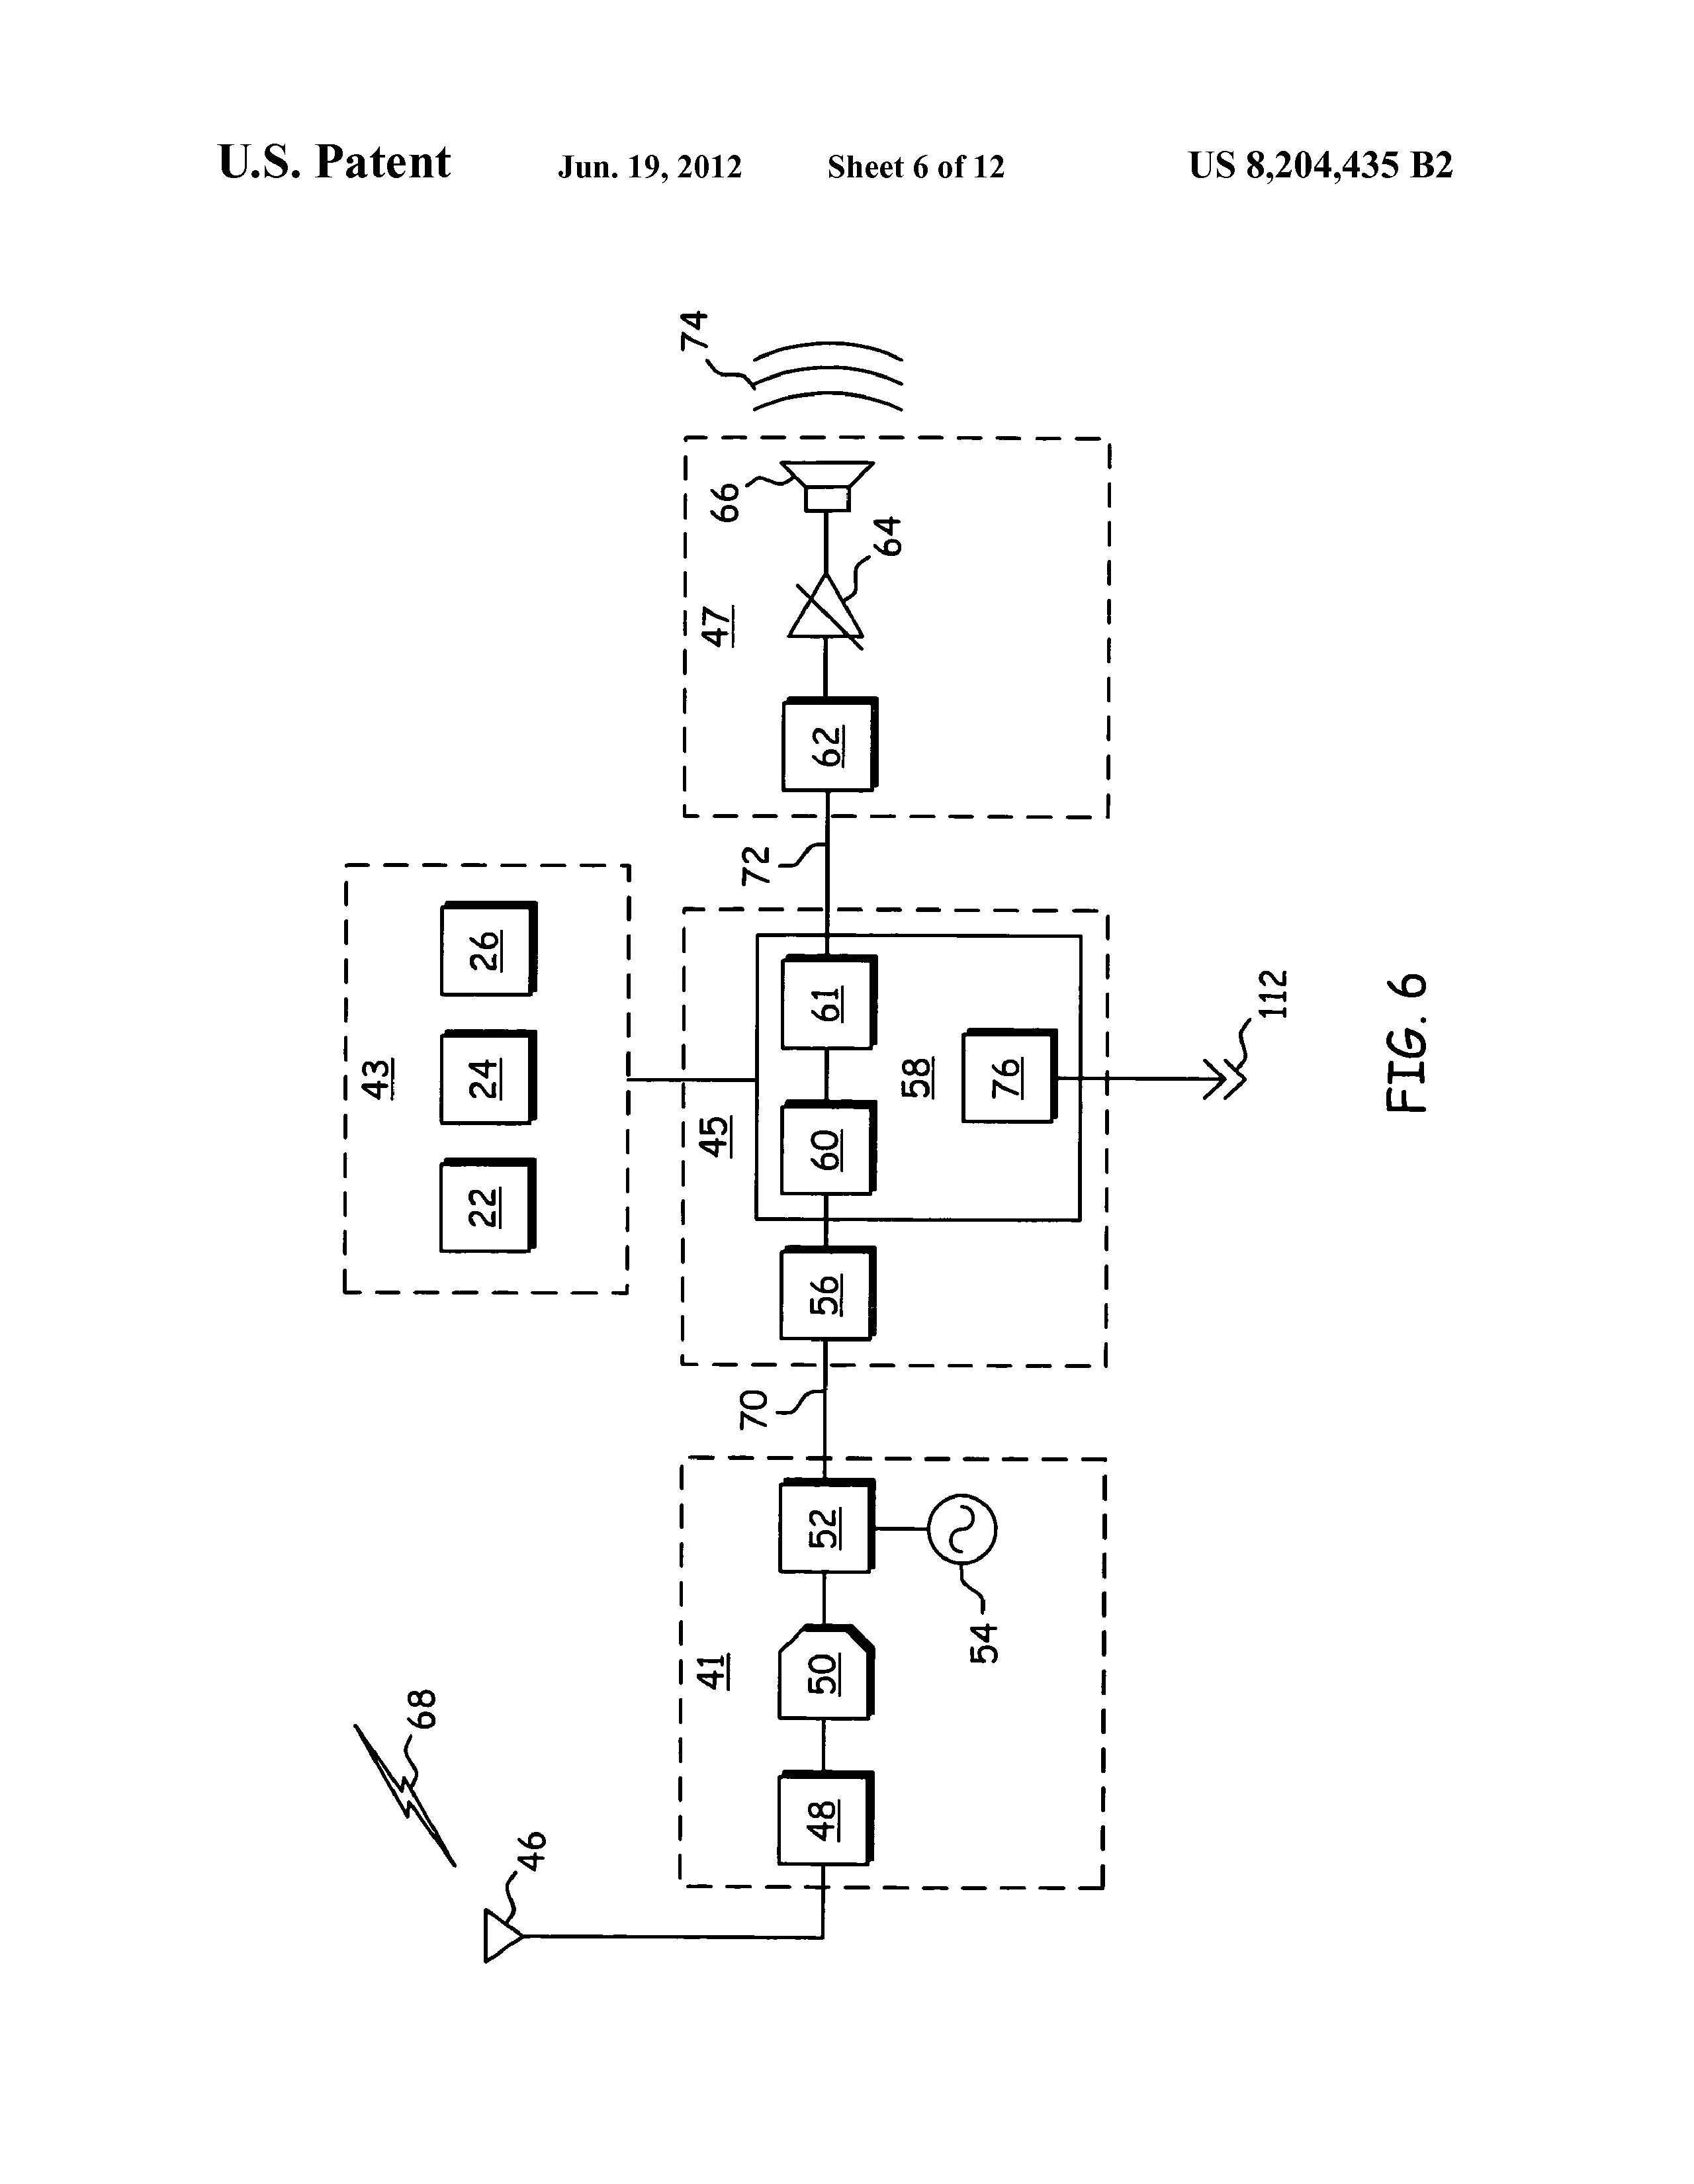 wireless headset supporting enhanced call functions